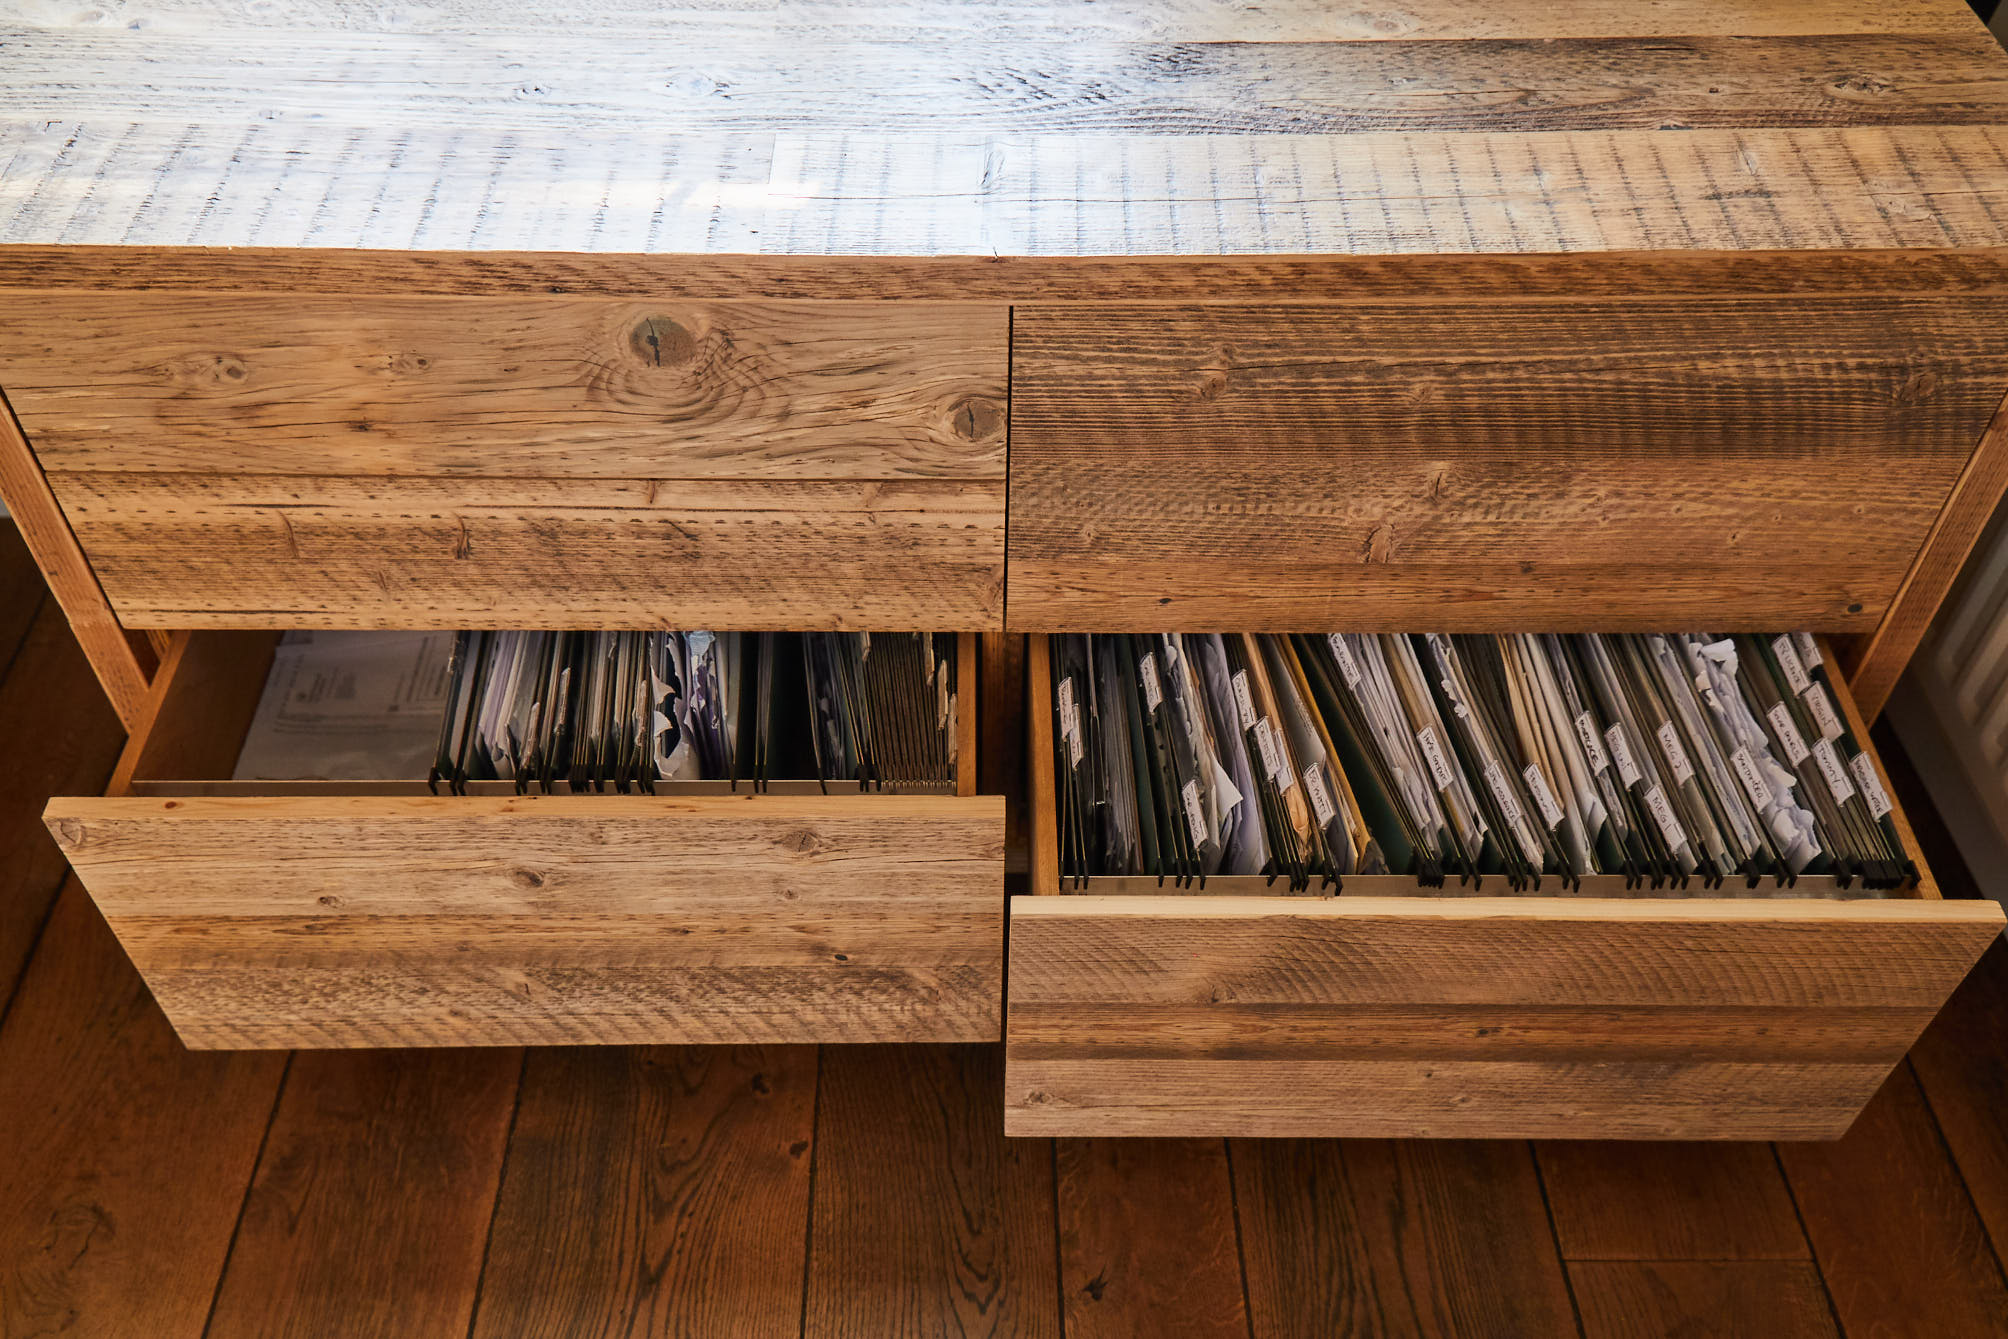 Rustic Filing cabinet drawers open with papers inside